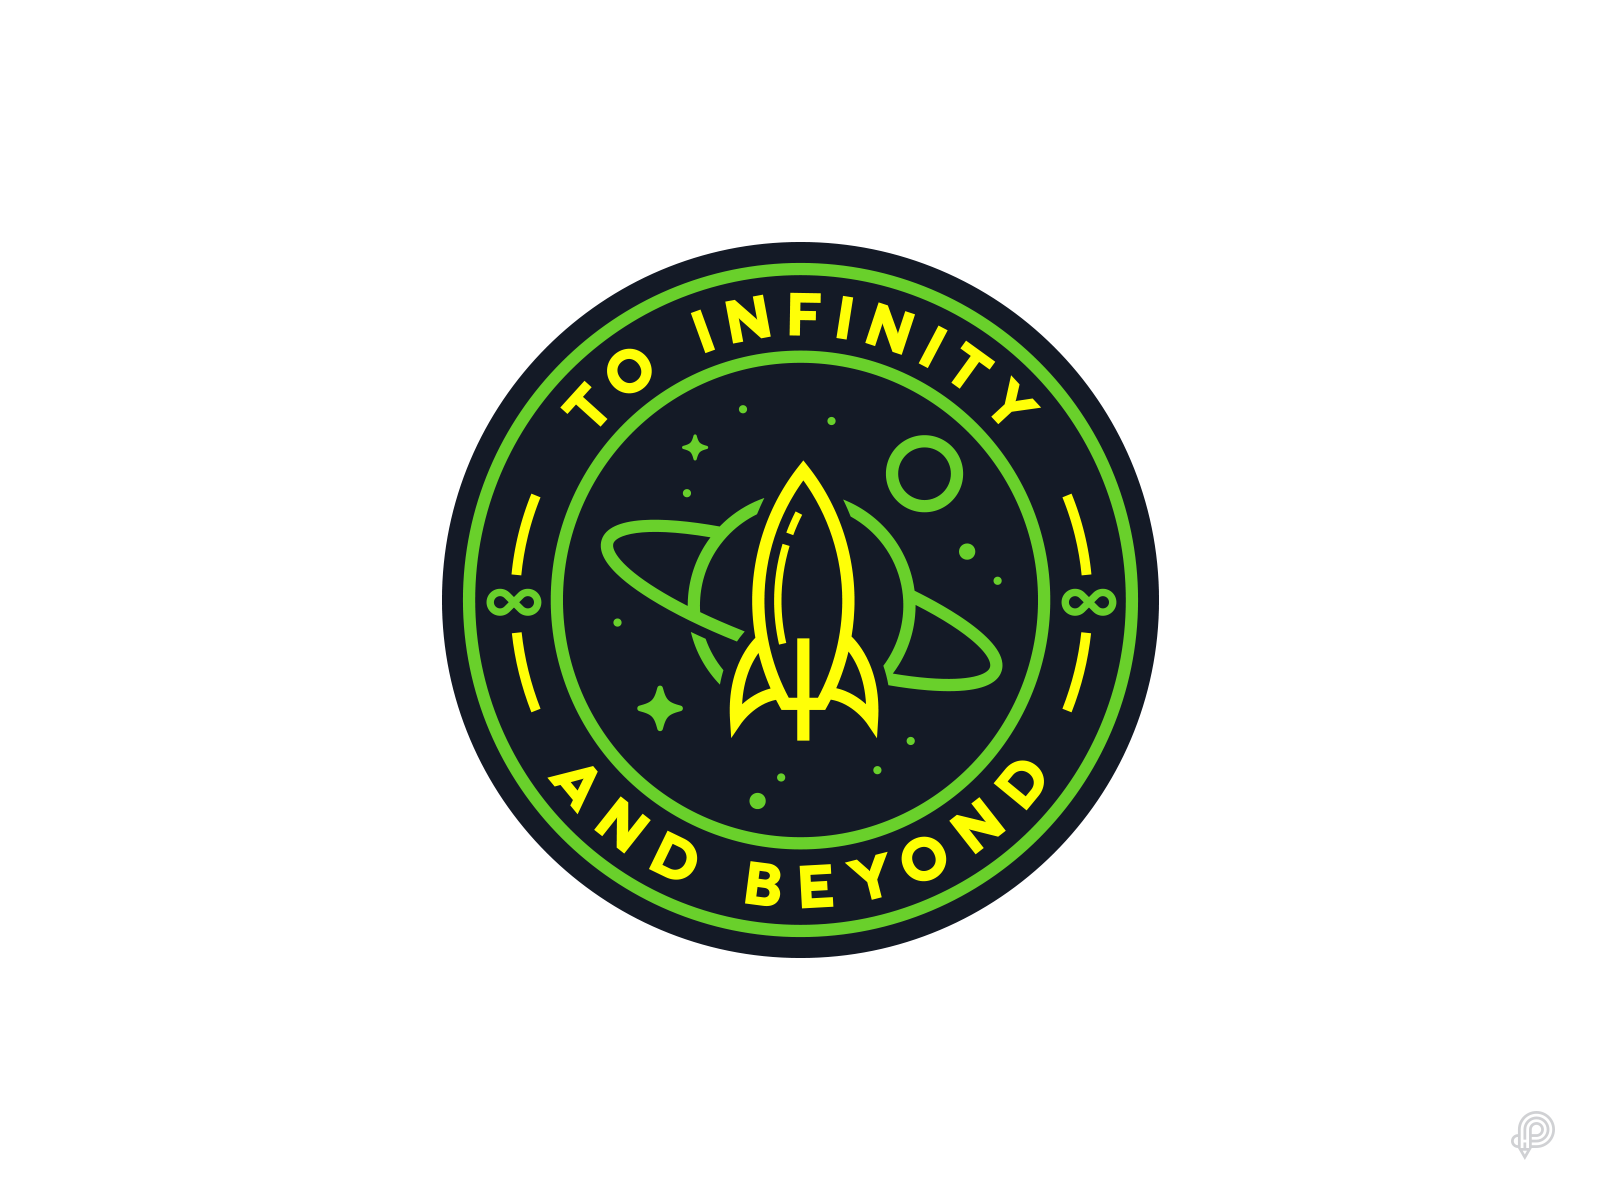 To Infinity And Beyond by Petr Had on Dribbble.